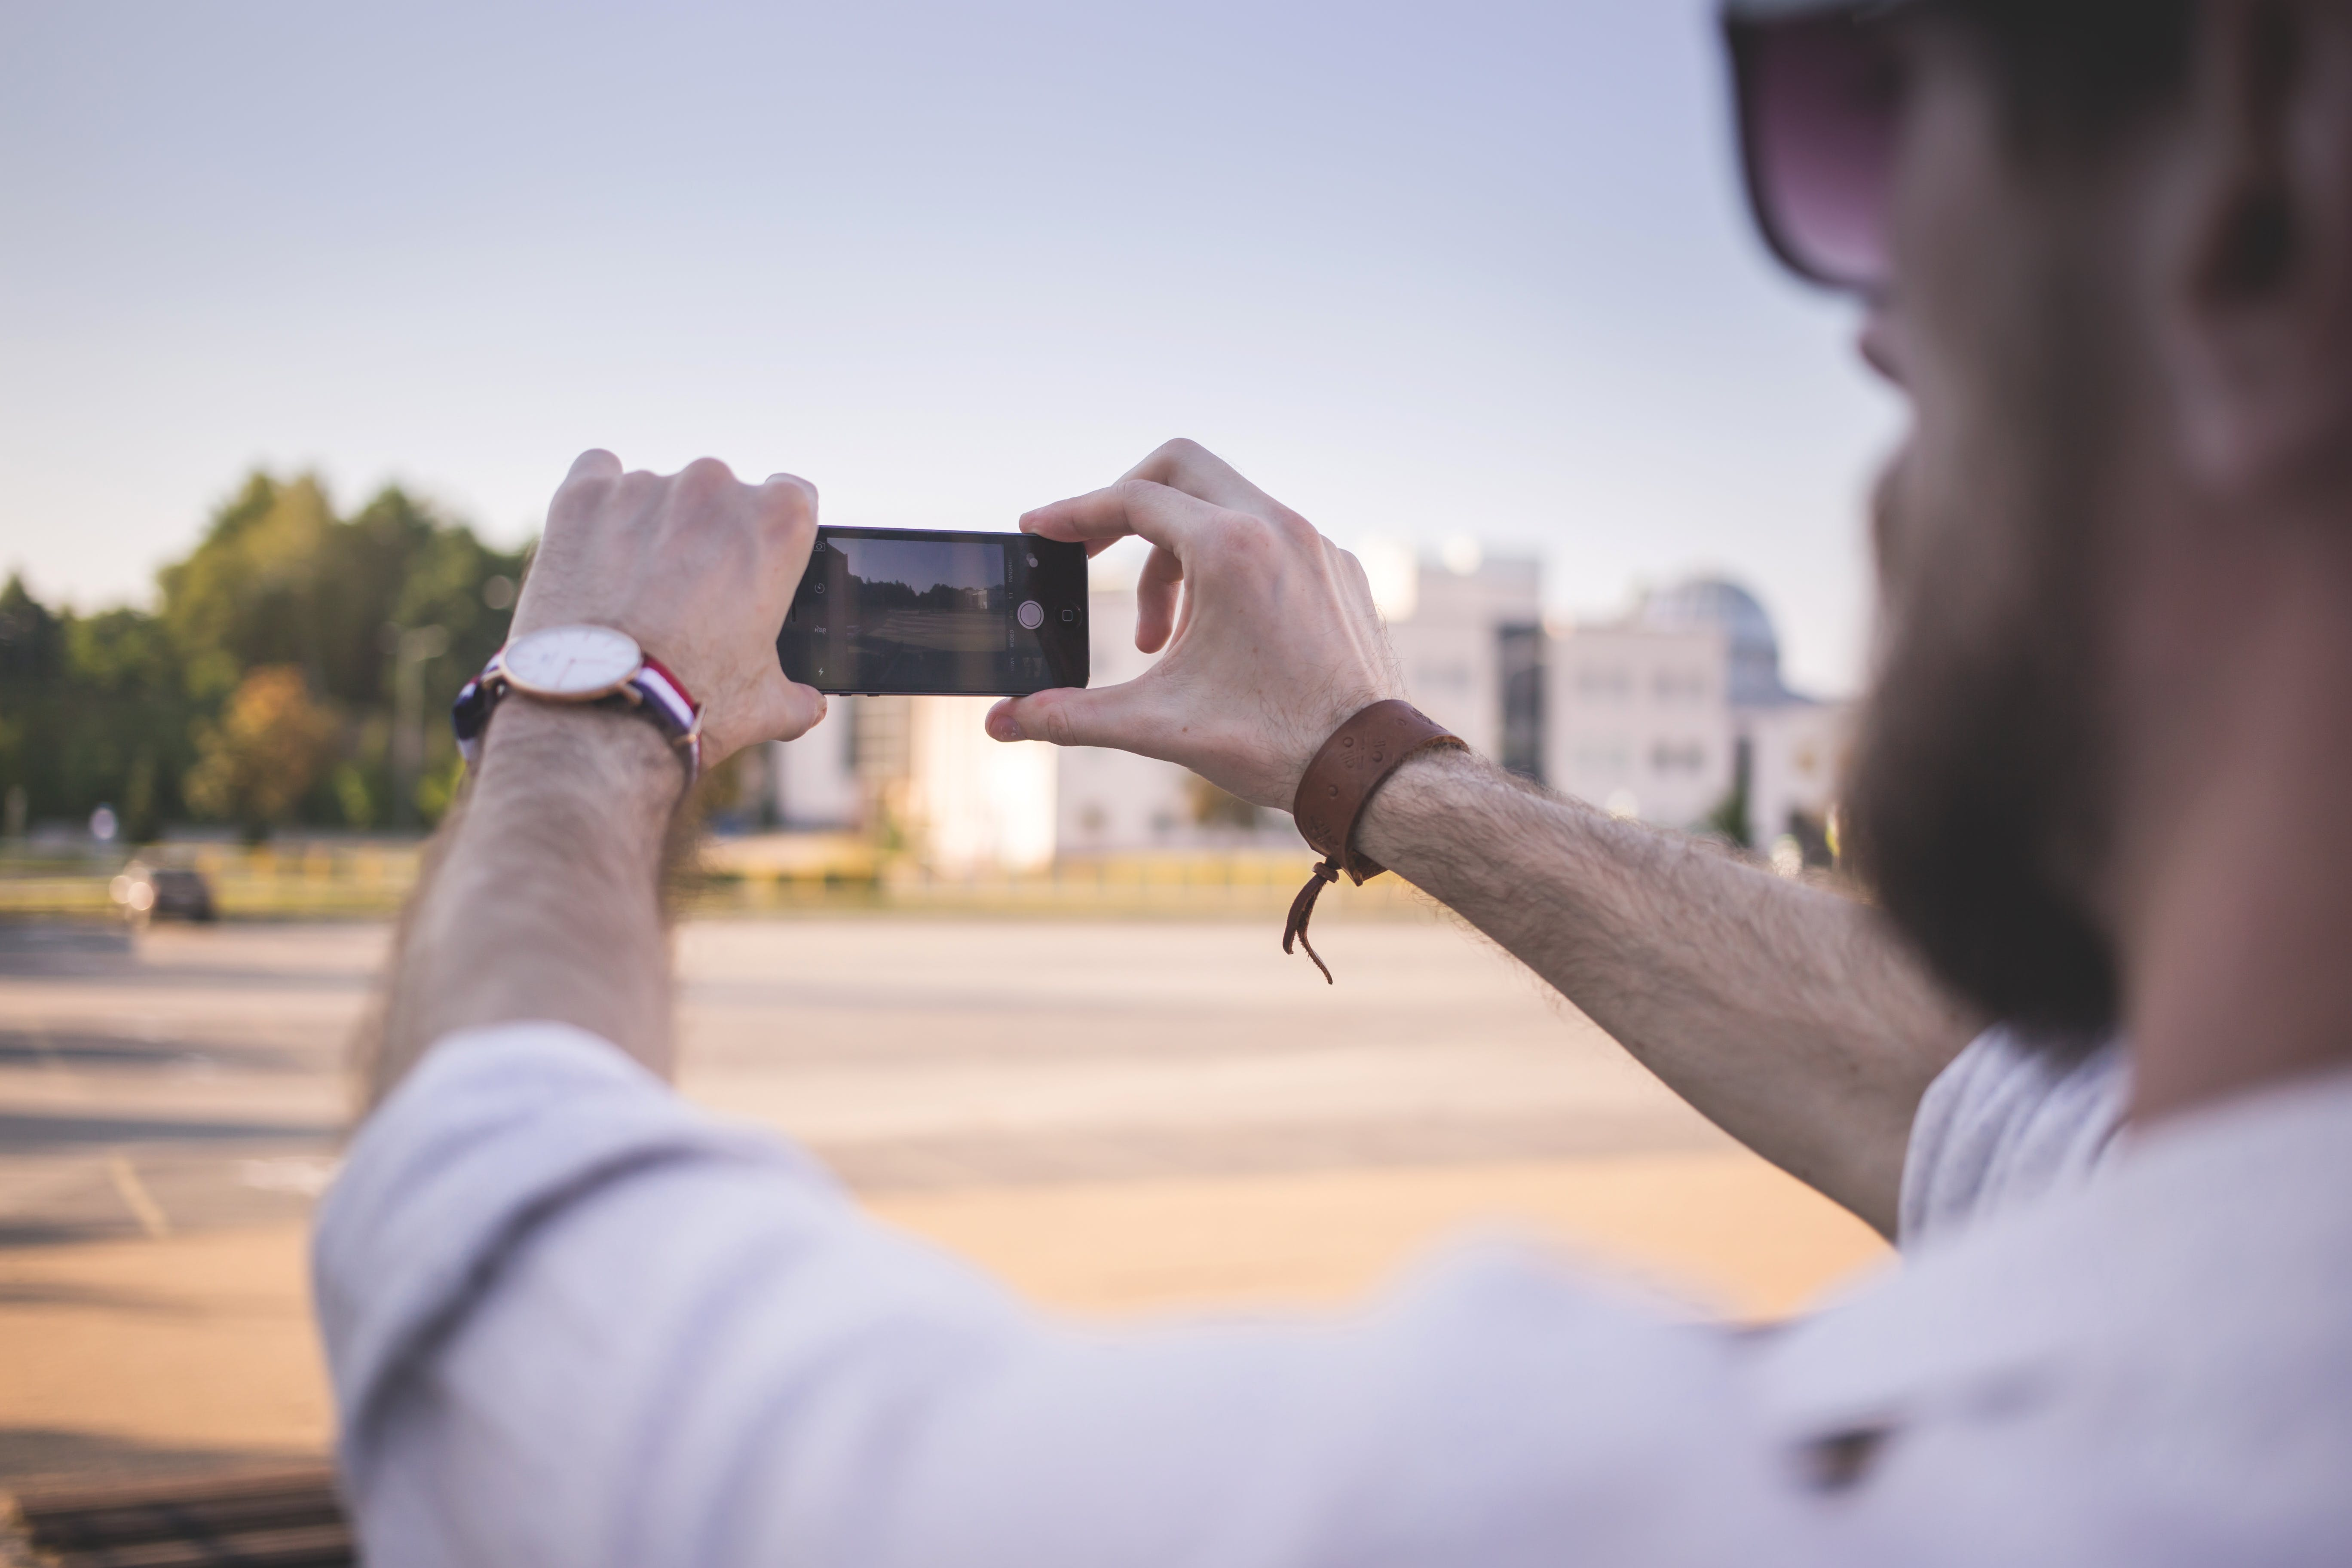 Tilt Shift Photo of Man Holding Black Smartphone Taking Photo of Gray Ground at Daytime